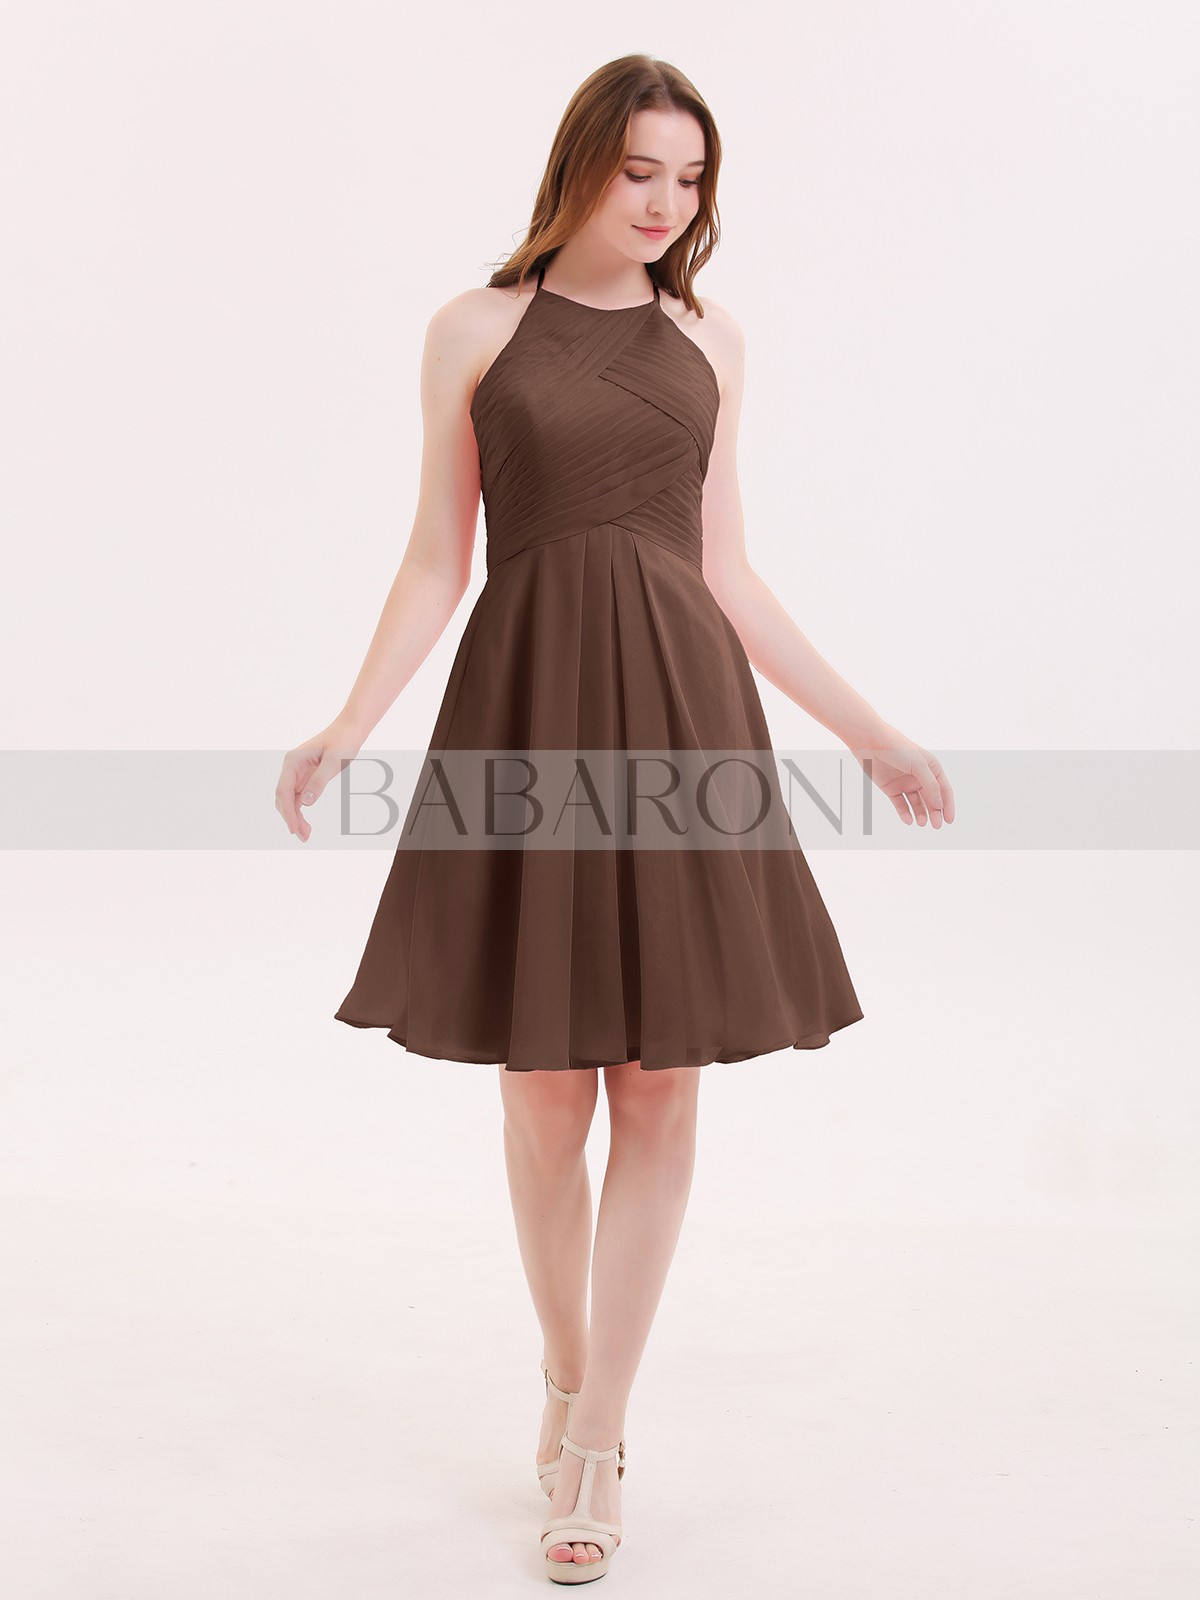 bdd7c0815f4 Chocolate Olga Short Chiffon Bridesmaid Dress with Pocket